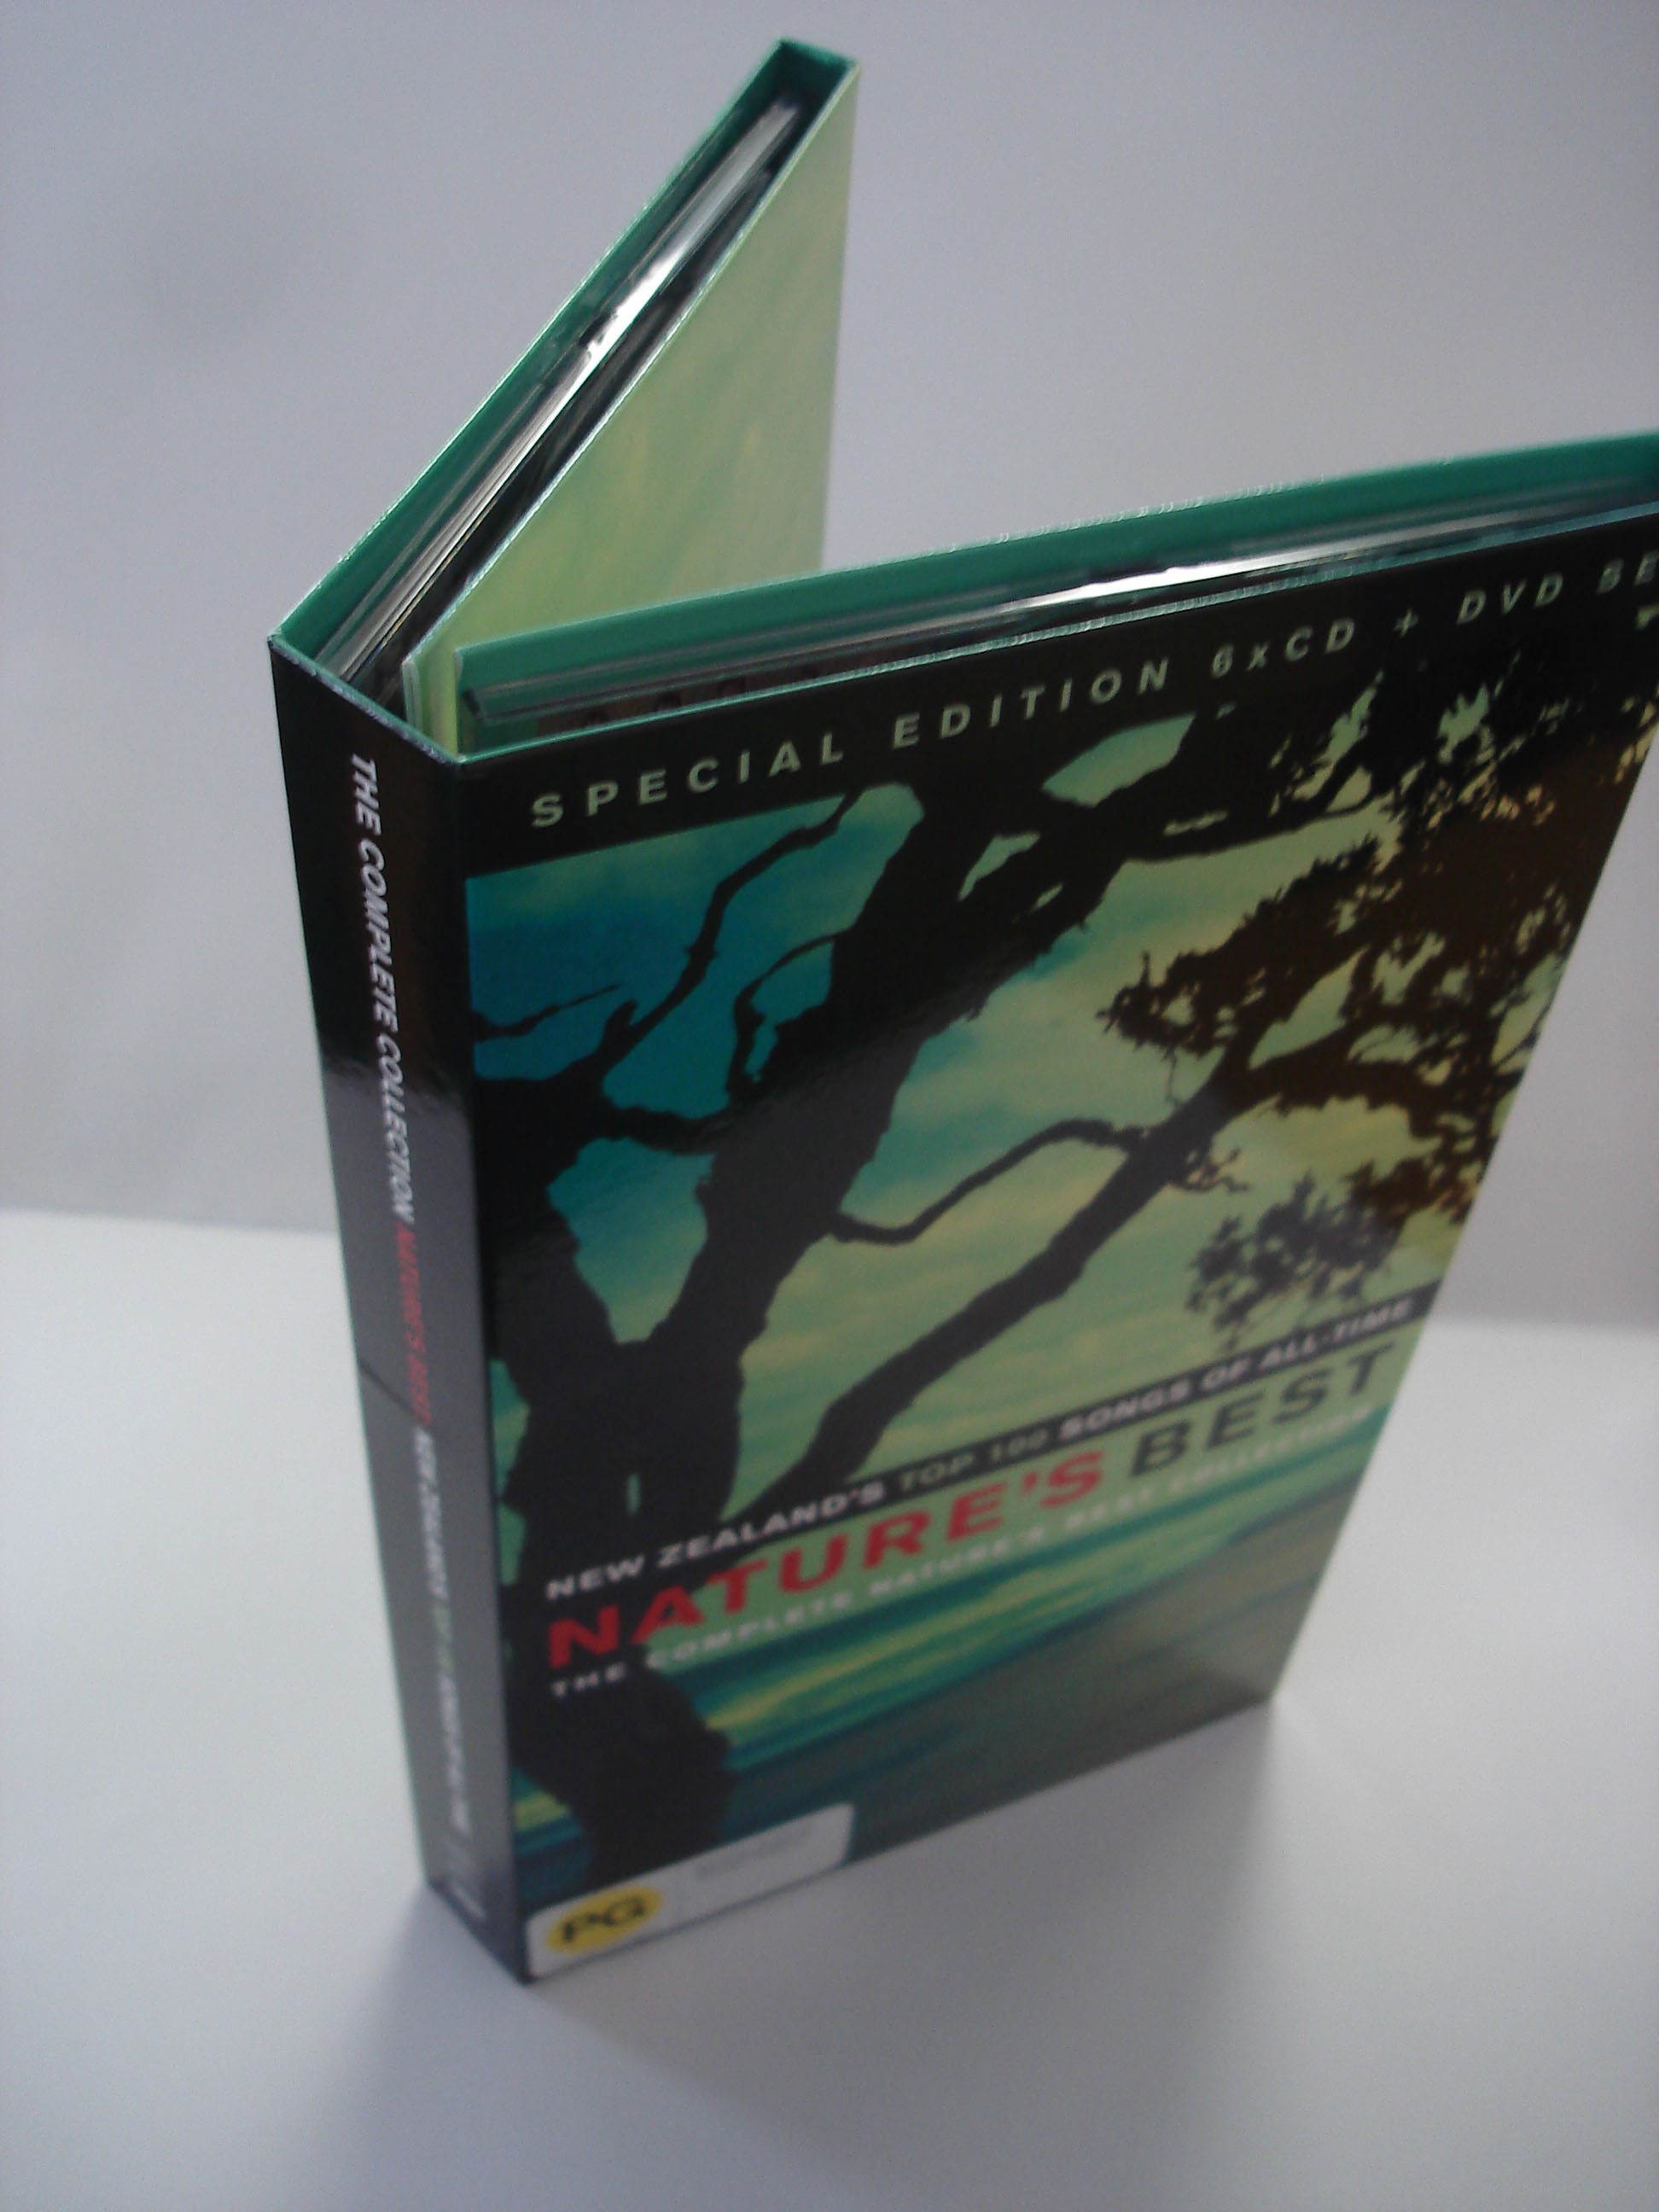 VARIOUS ARTISTS - NATURE'S BEST SPECIAL EDITION - BOX SET